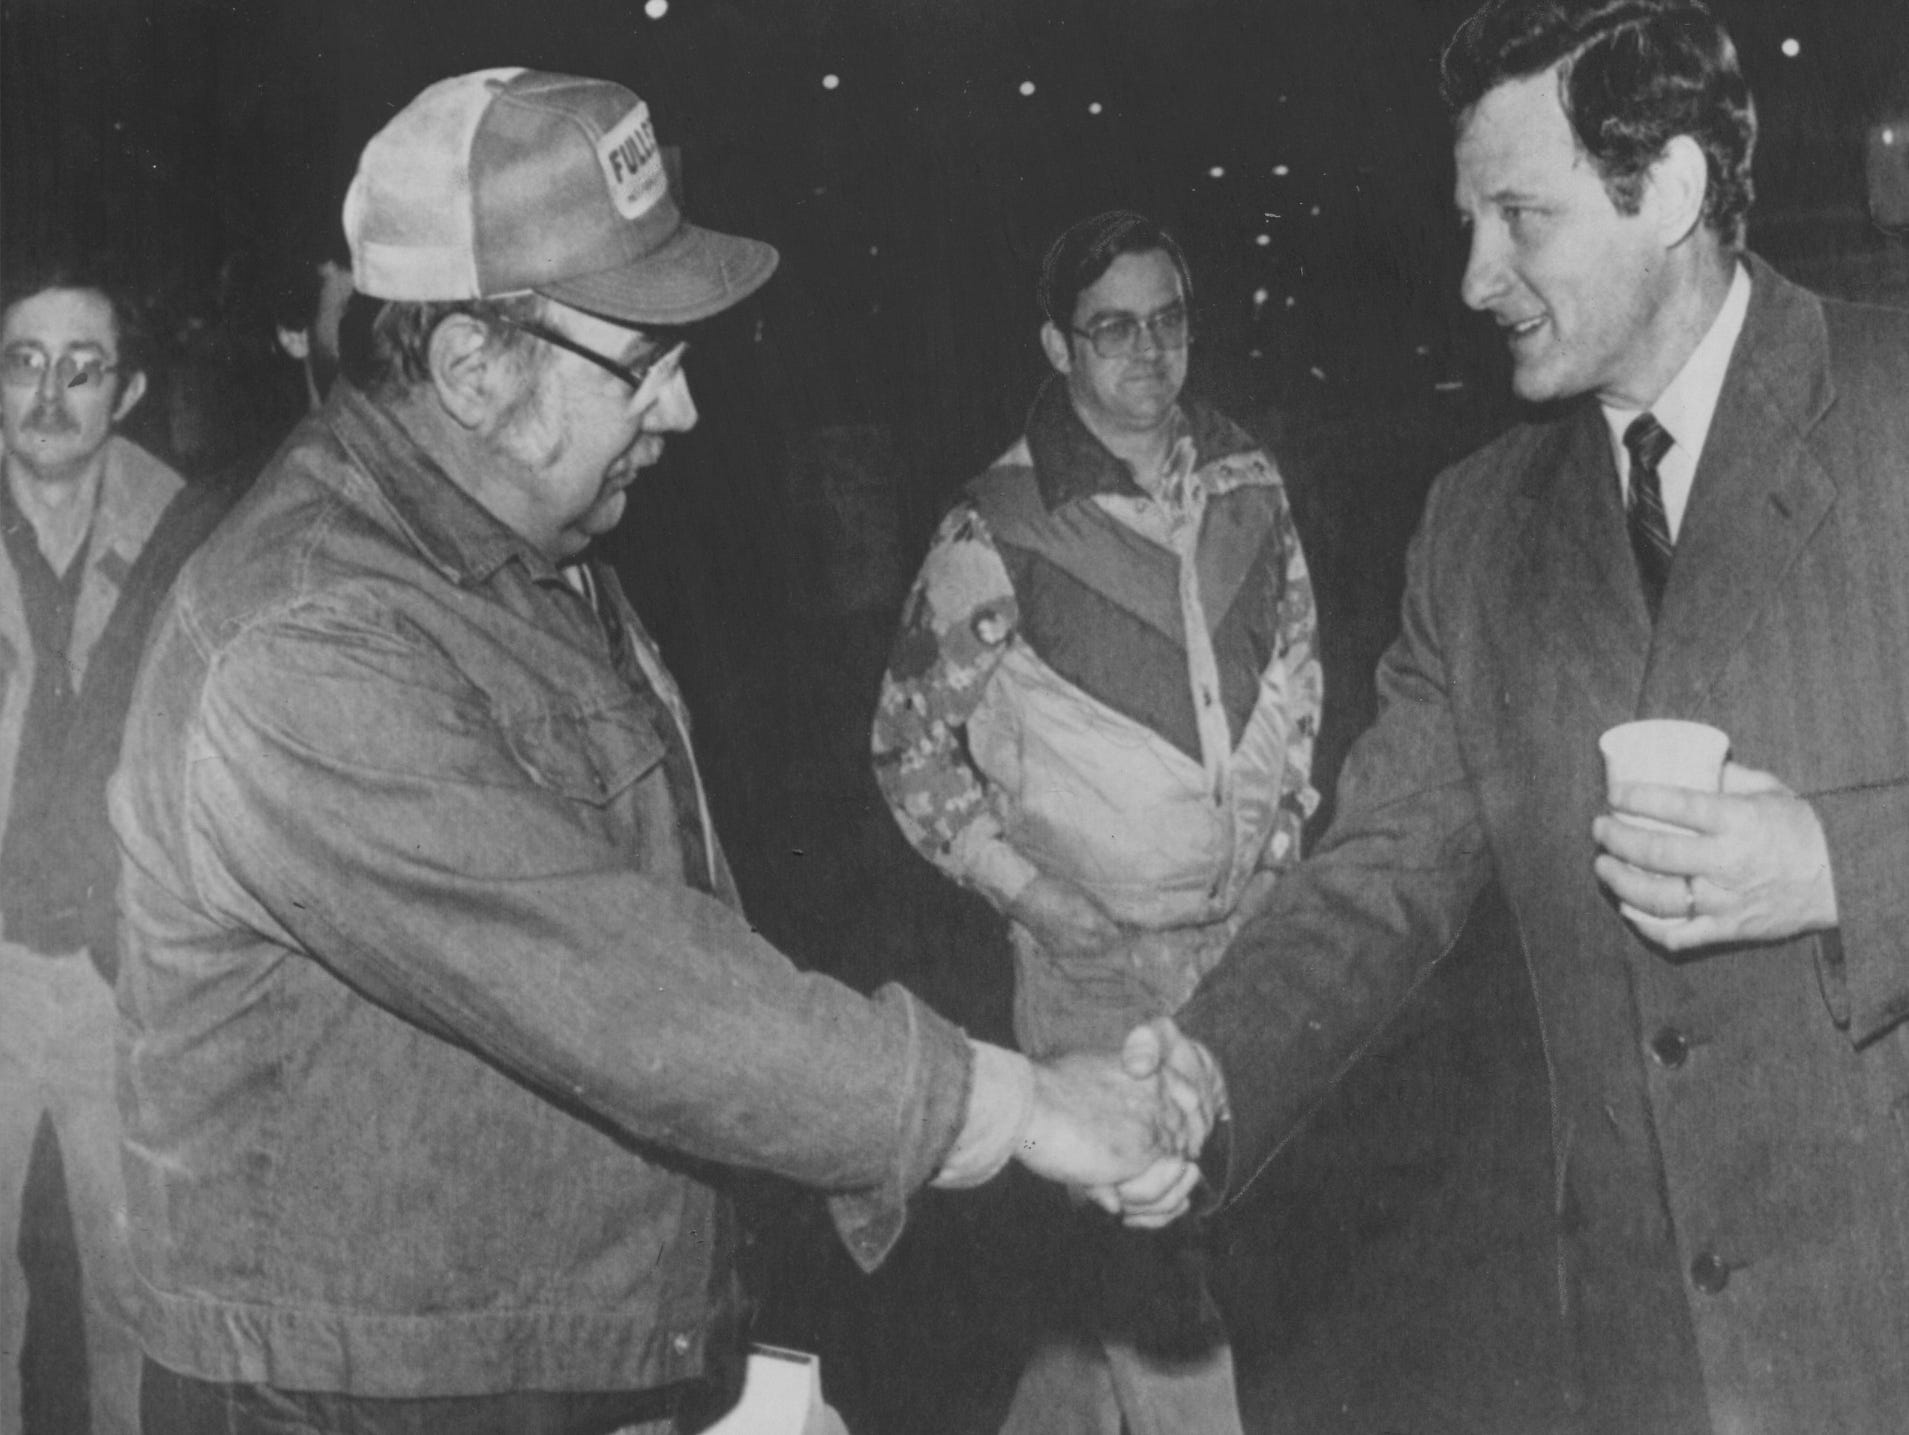 Sen. Birch Bayh, D-Ind., even in defeat, thanked workers at the Chevrolet plant in Indianapolis before sunrise Wednesday after losing to Republican Dan Quayle in his bid for an unprecedented fourth term in the U.S. Senate. After months of shaking hands at all hours of the day across he state Bayh and a dozen campaign workers want to just one more plant to thank the workers for their help. (11/5/1980)